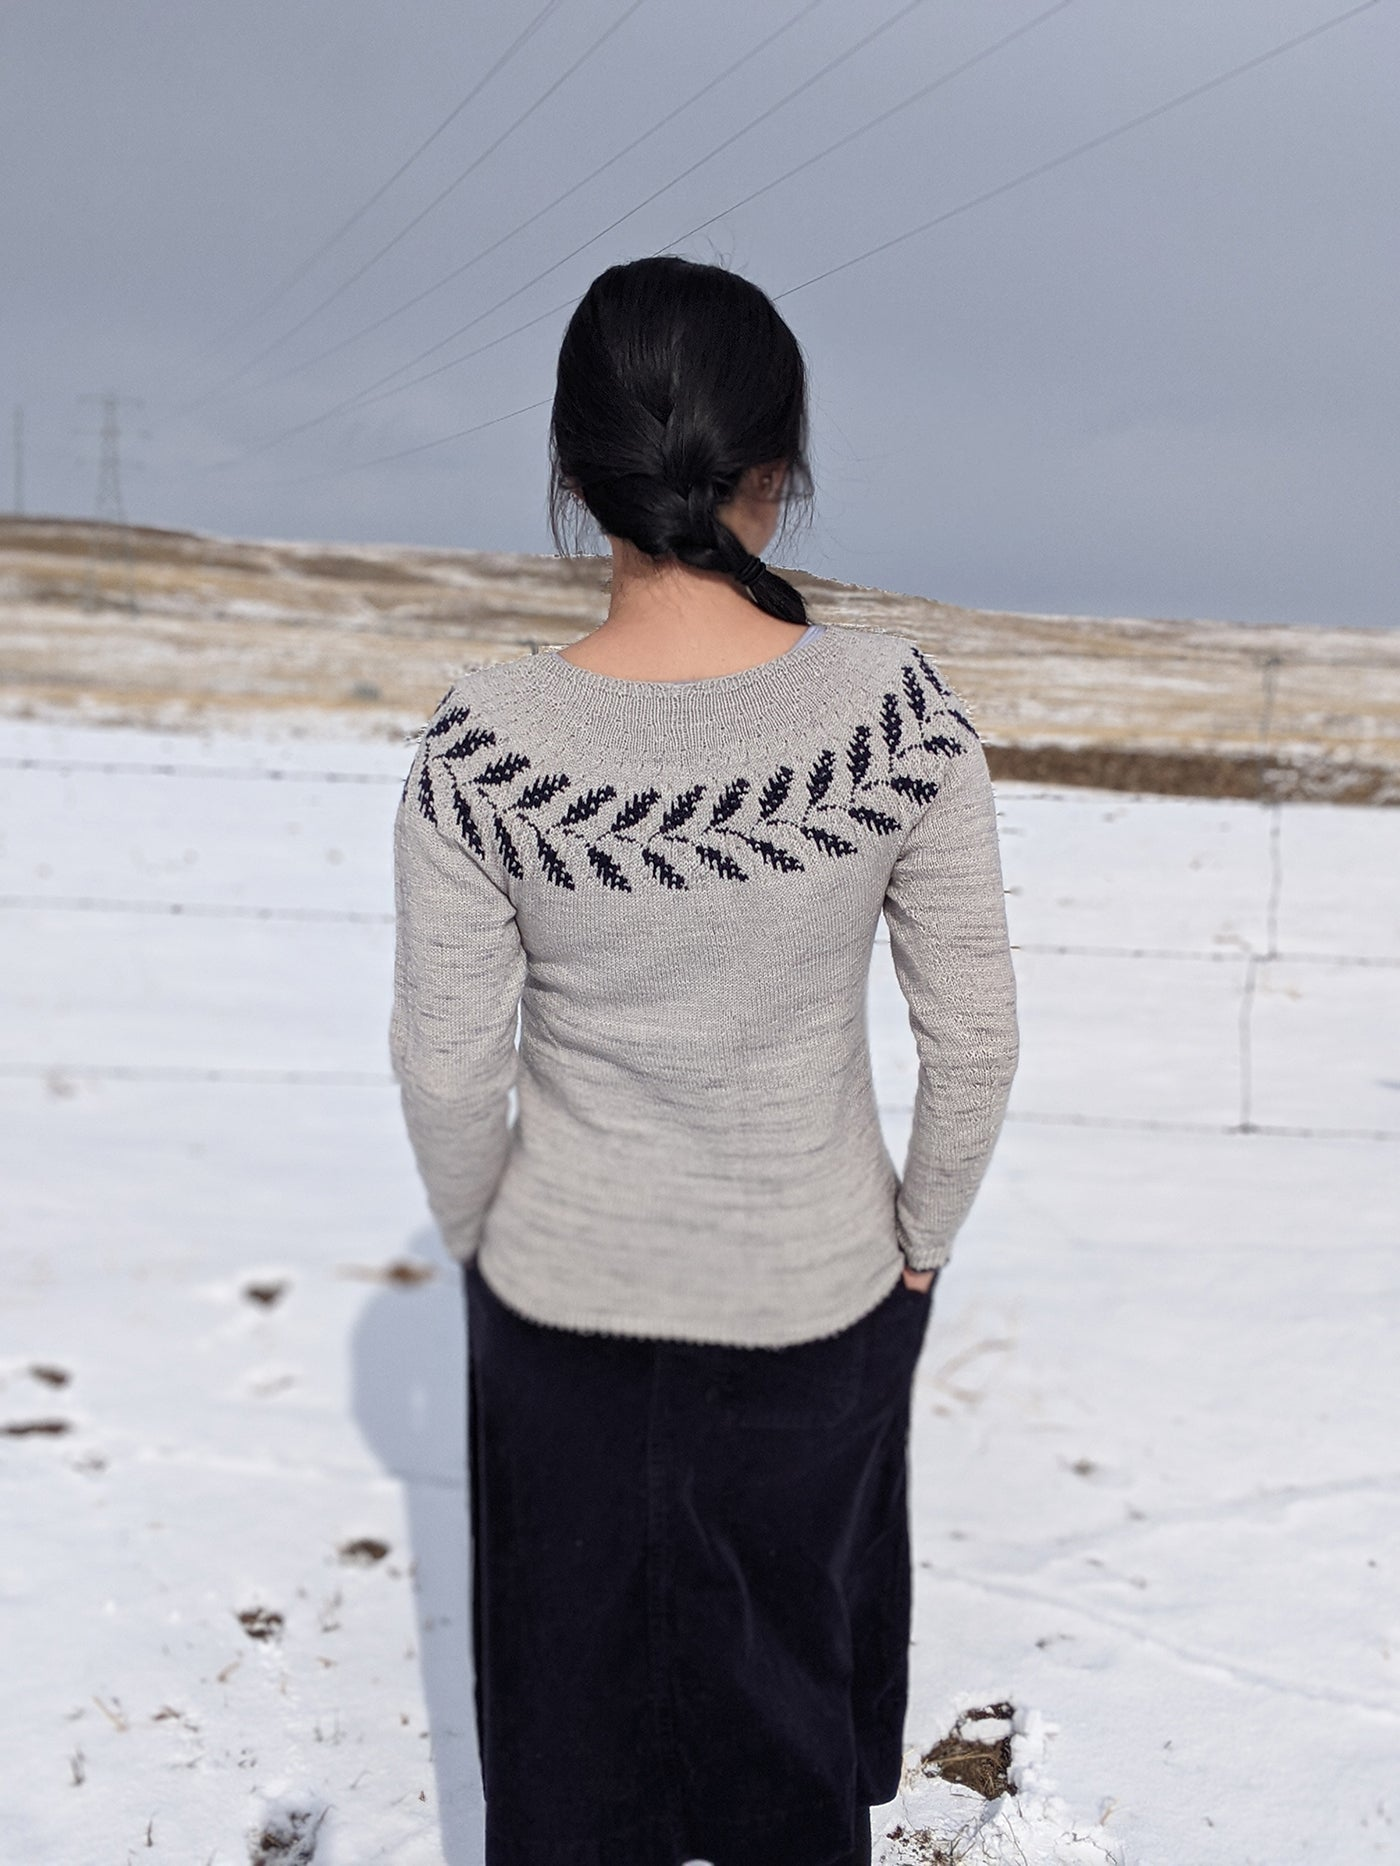 This is an image of a woman with her back to the camera wearing a sweater with a design along the collar